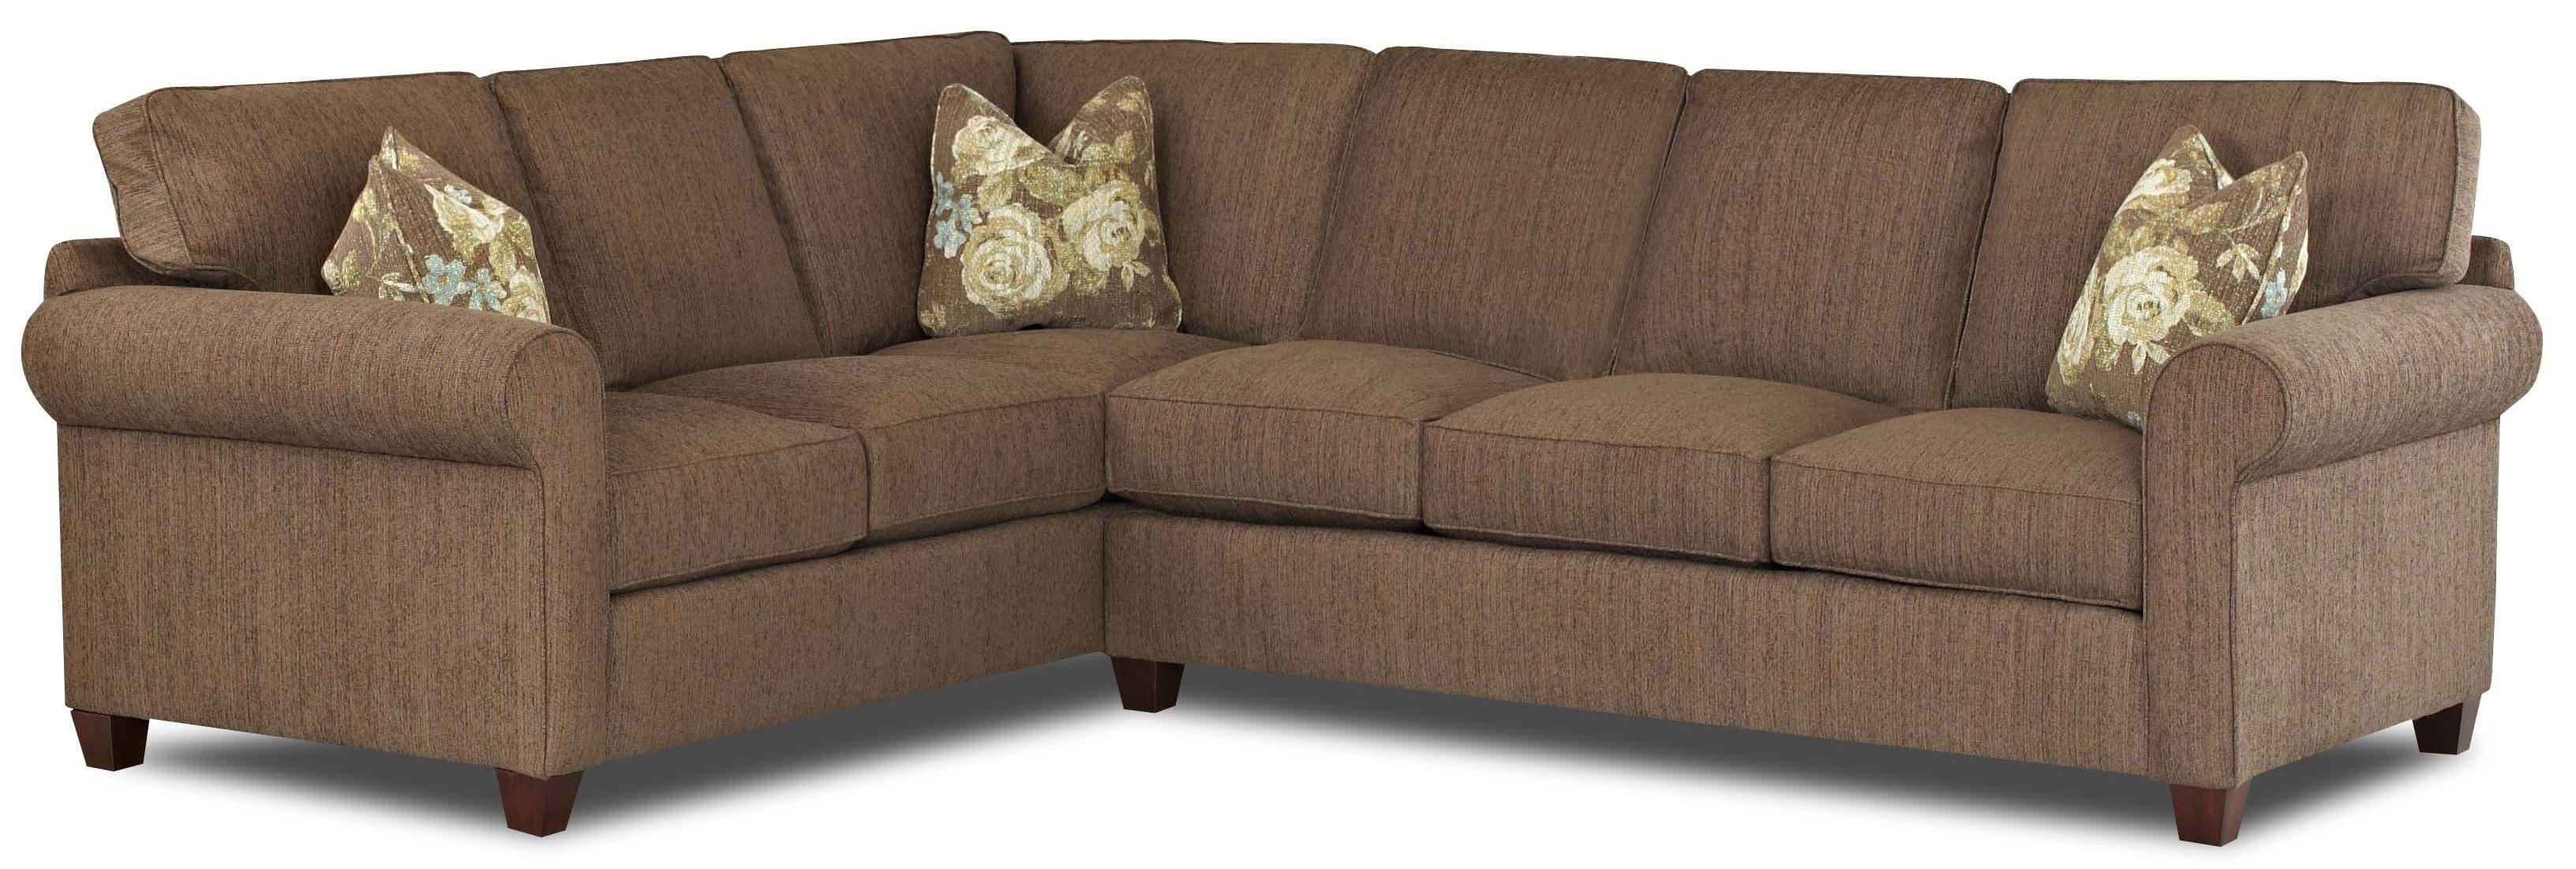 Transitional 2 Piece Sectional Sofa With Weltklaussner | Wolf with 2 Piece Sofas (Image 14 of 15)